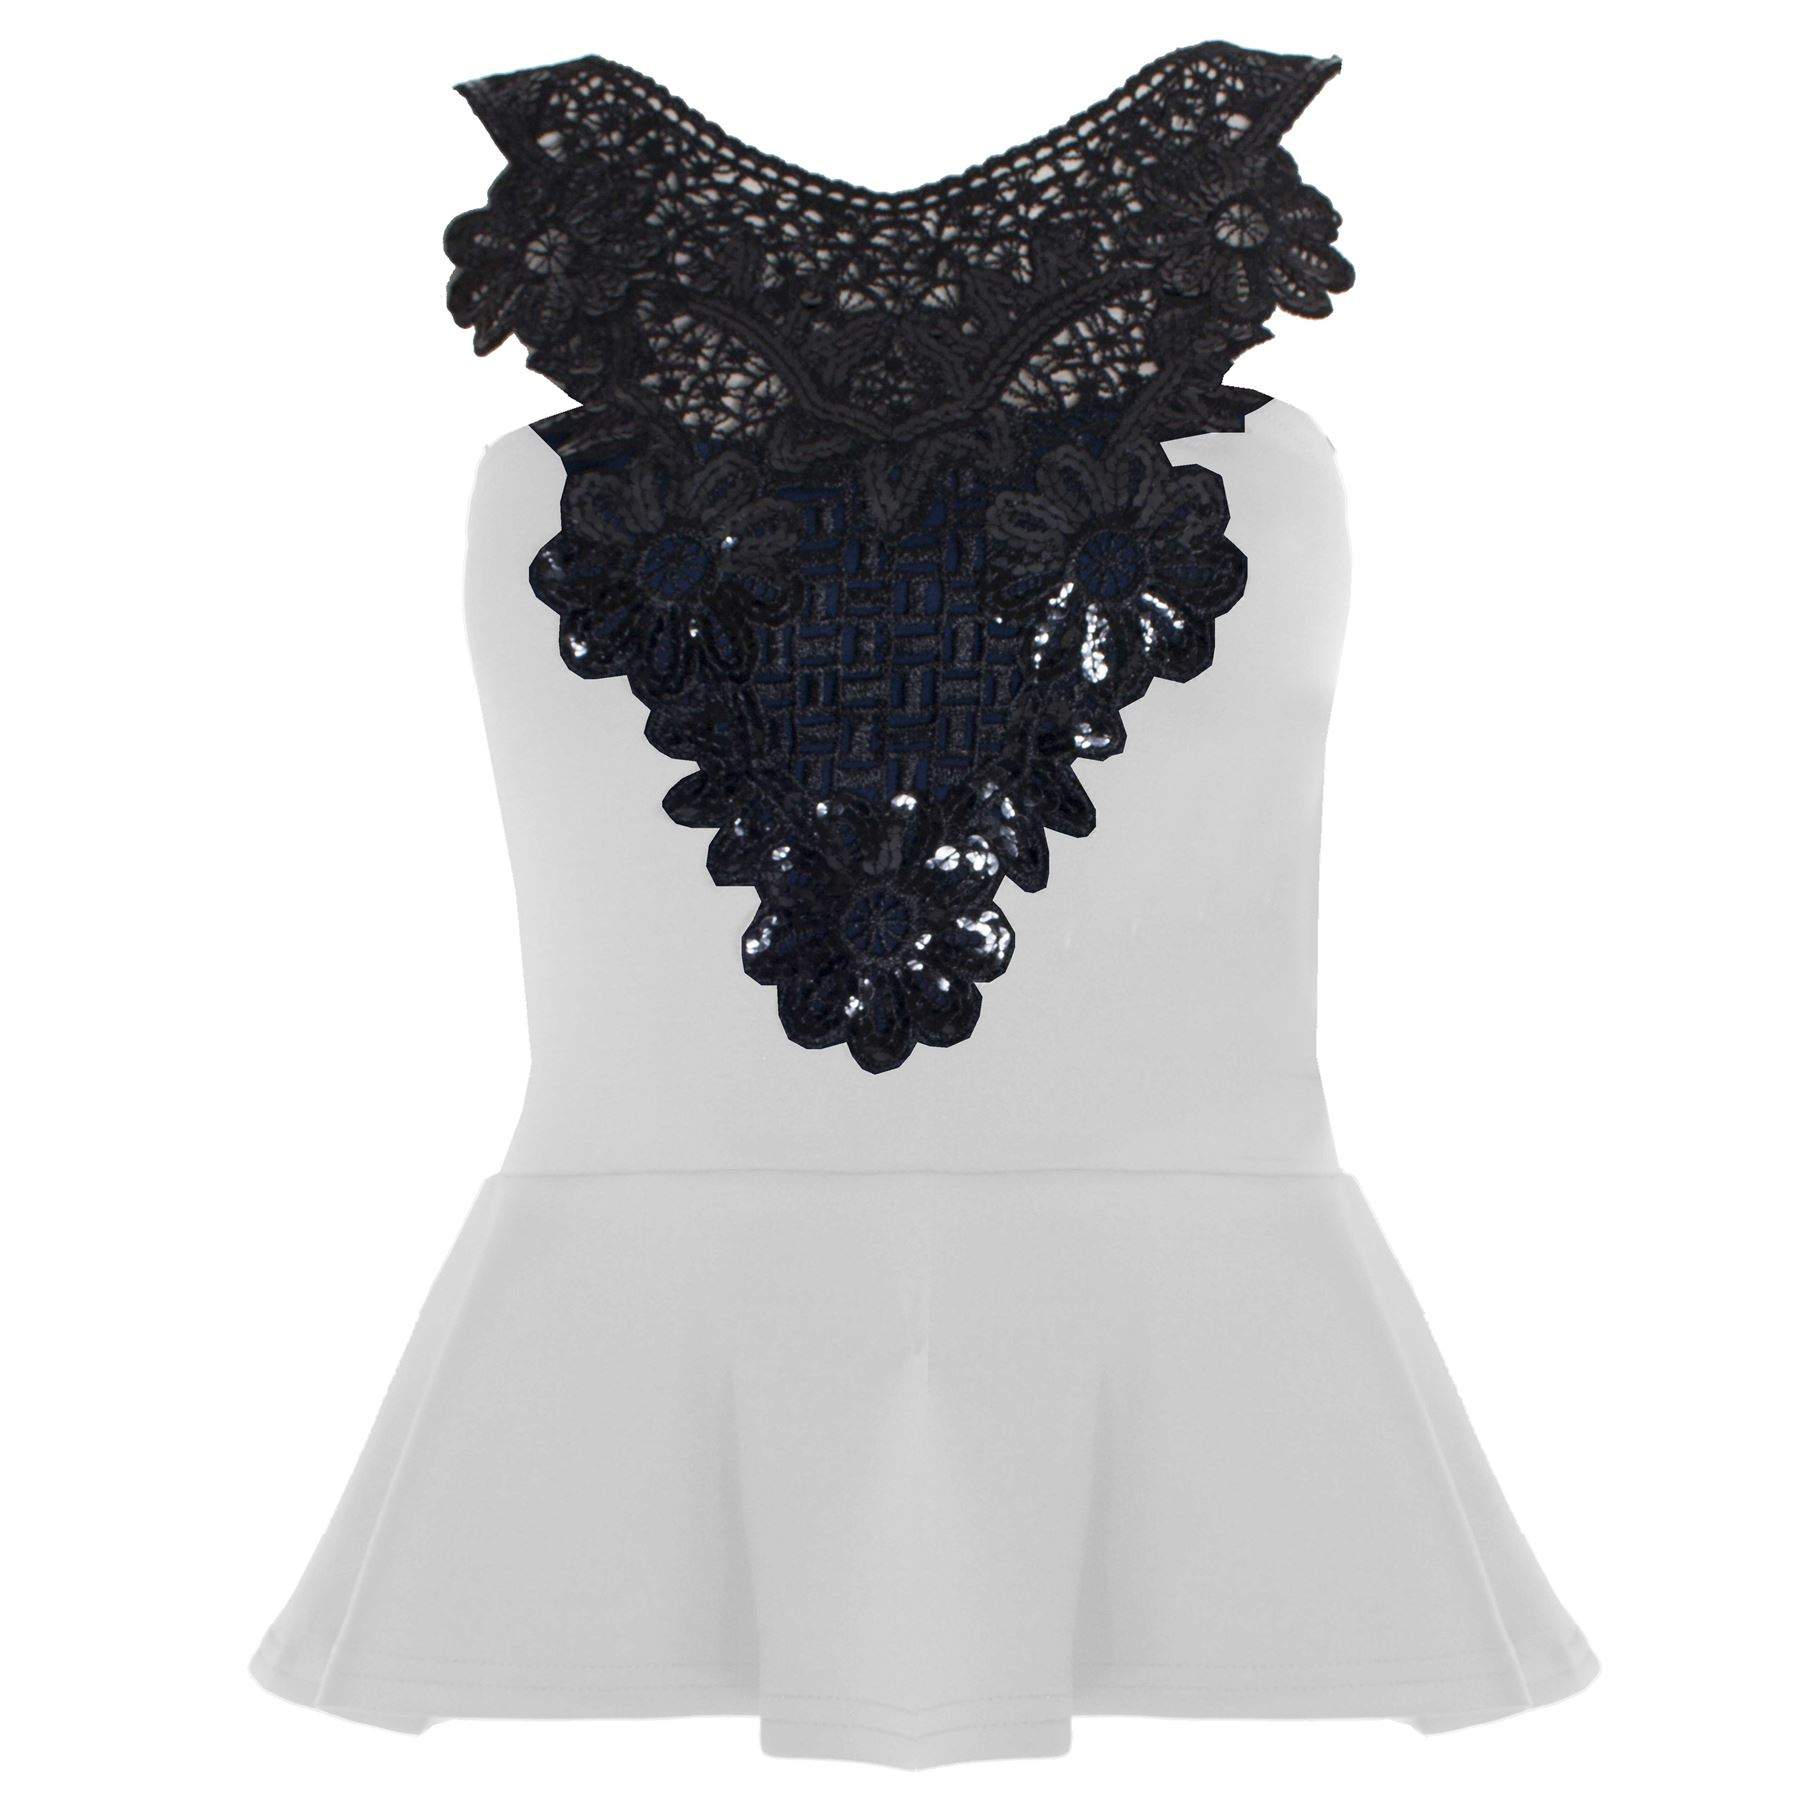 New Womens Ladies Sleeveless Crochet Sequin Floral Lace Insert ...